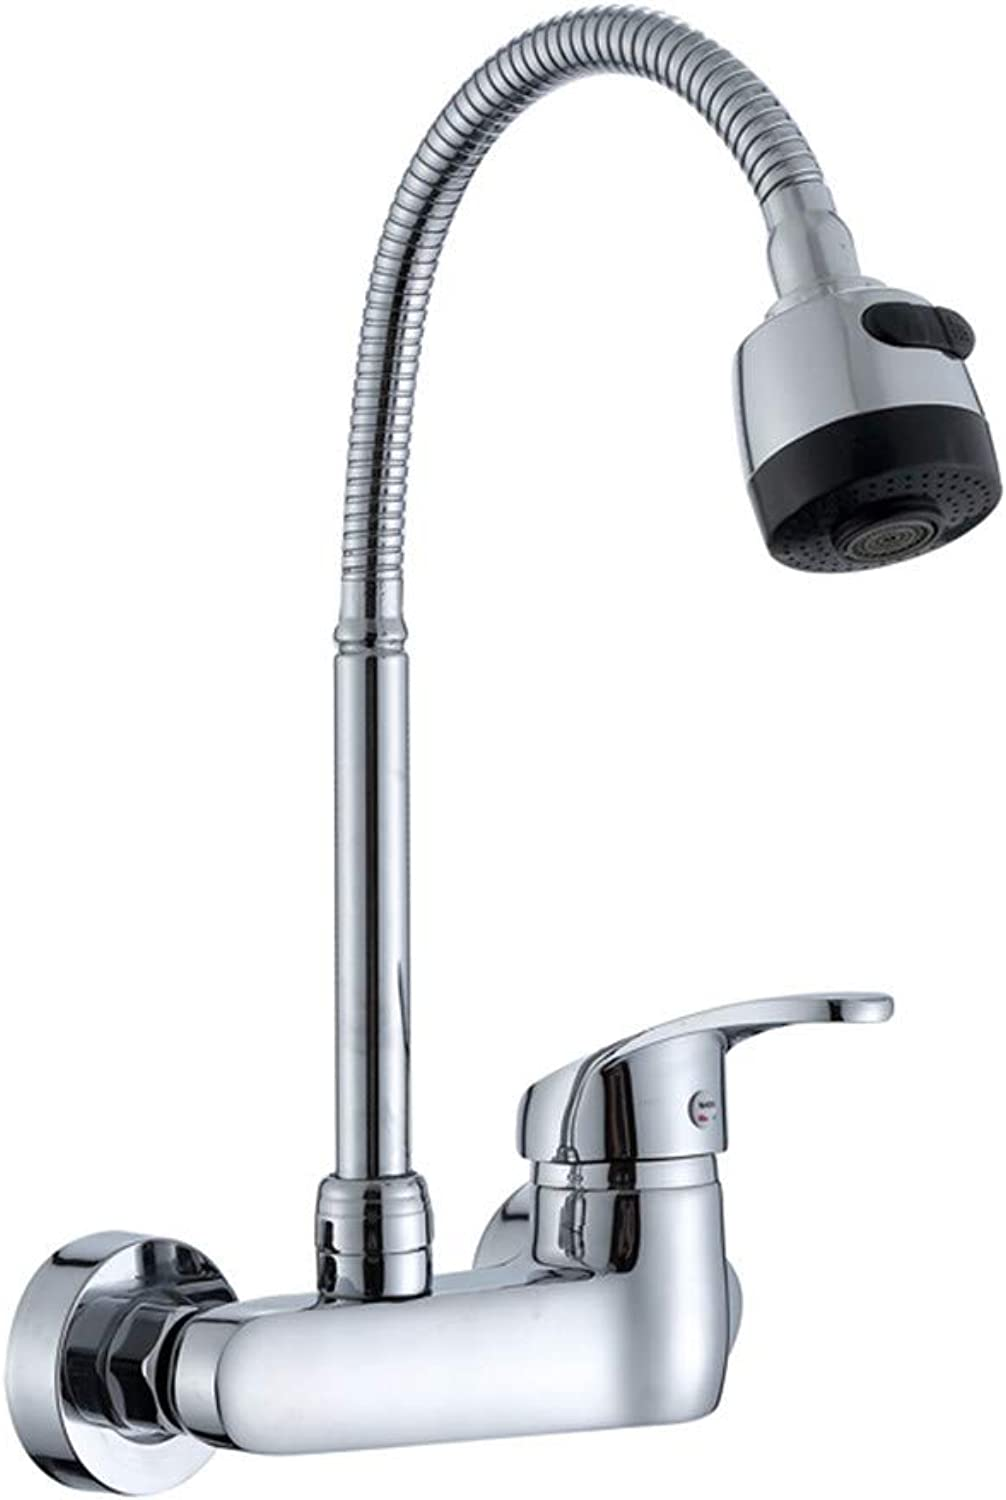 YAWEDA Wall Mounted Kitchen Faucet Single Handle Kitchen Mixer Taps Dual Holes Hot and Cold Water Tap 360 Degree redation Torneira Cozinha